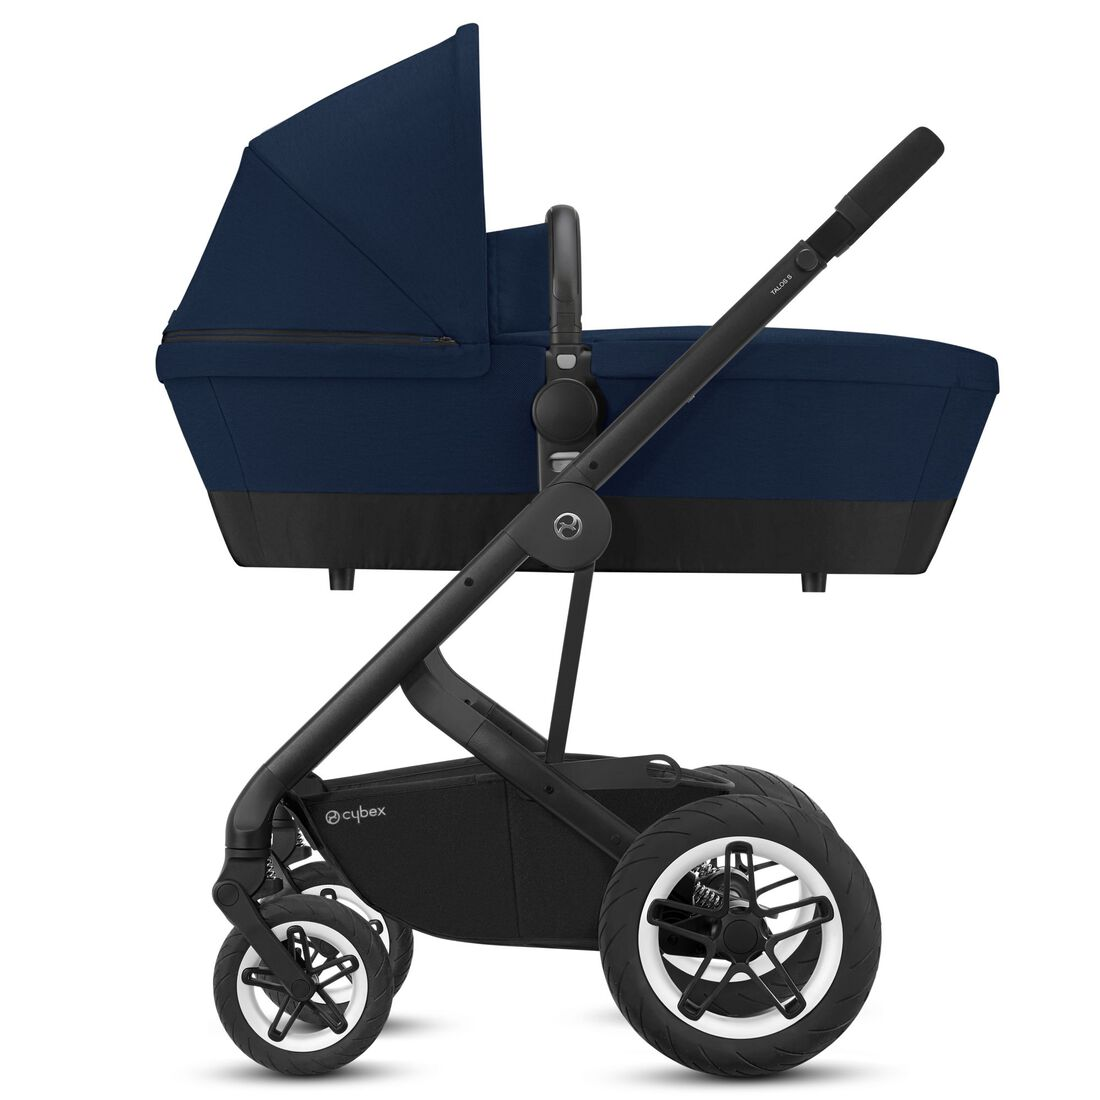 CYBEX Talos S 2-in-1 - Navy Blue in Navy Blue large image number 2